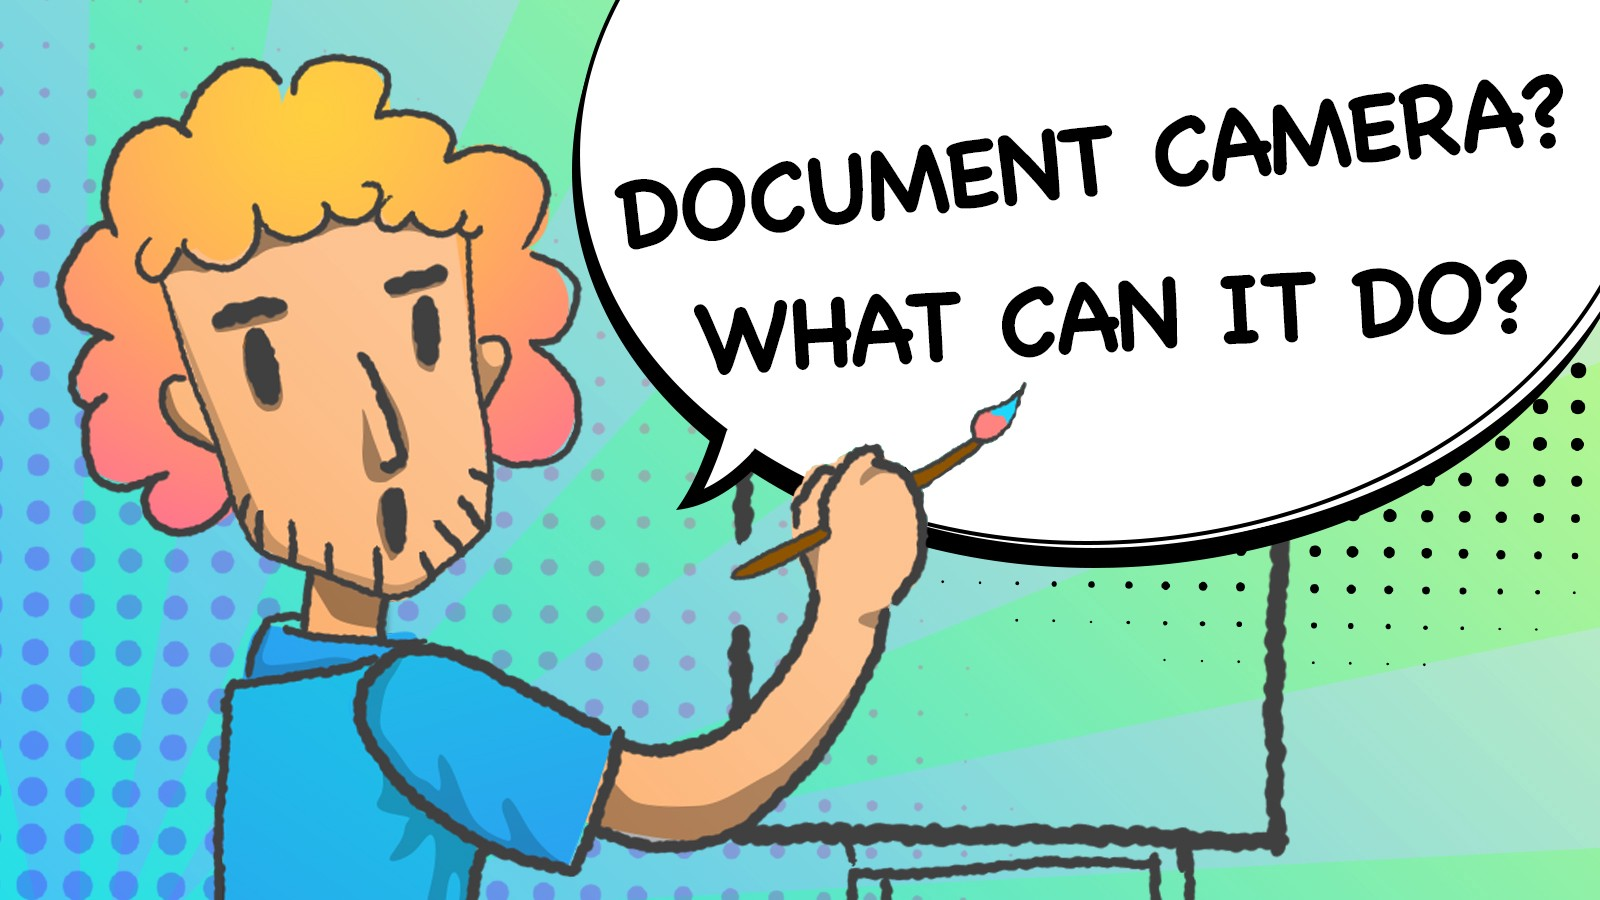 Document camera? What's that? I've never heard of it.